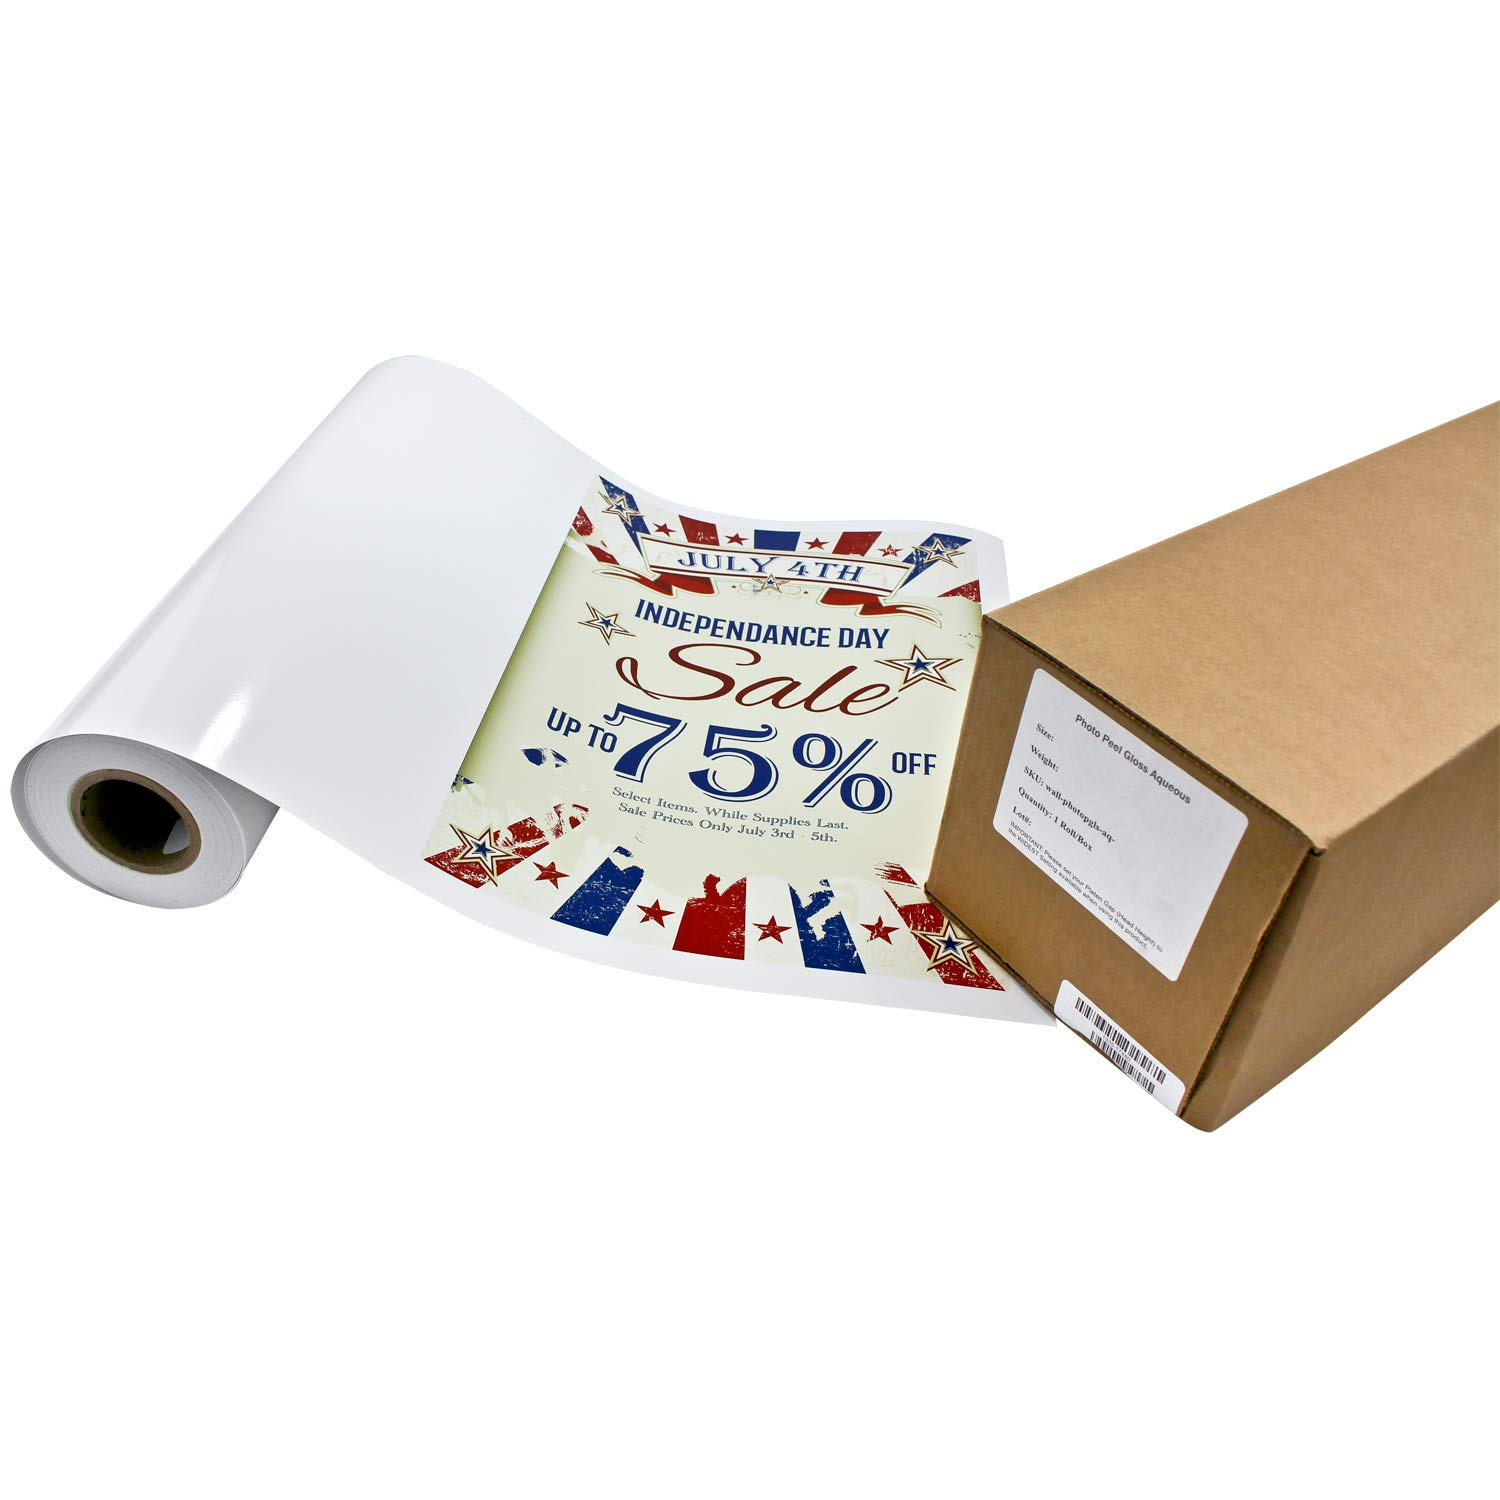 graphic about Printable Adhesive Vinyl called Picture Peel Shiny Printable Adhesive Vinyl Roll 17 inches x 10 toes Inkjet Peel and Adhere Sticker Paper Operates with All Inkjet Printers Like